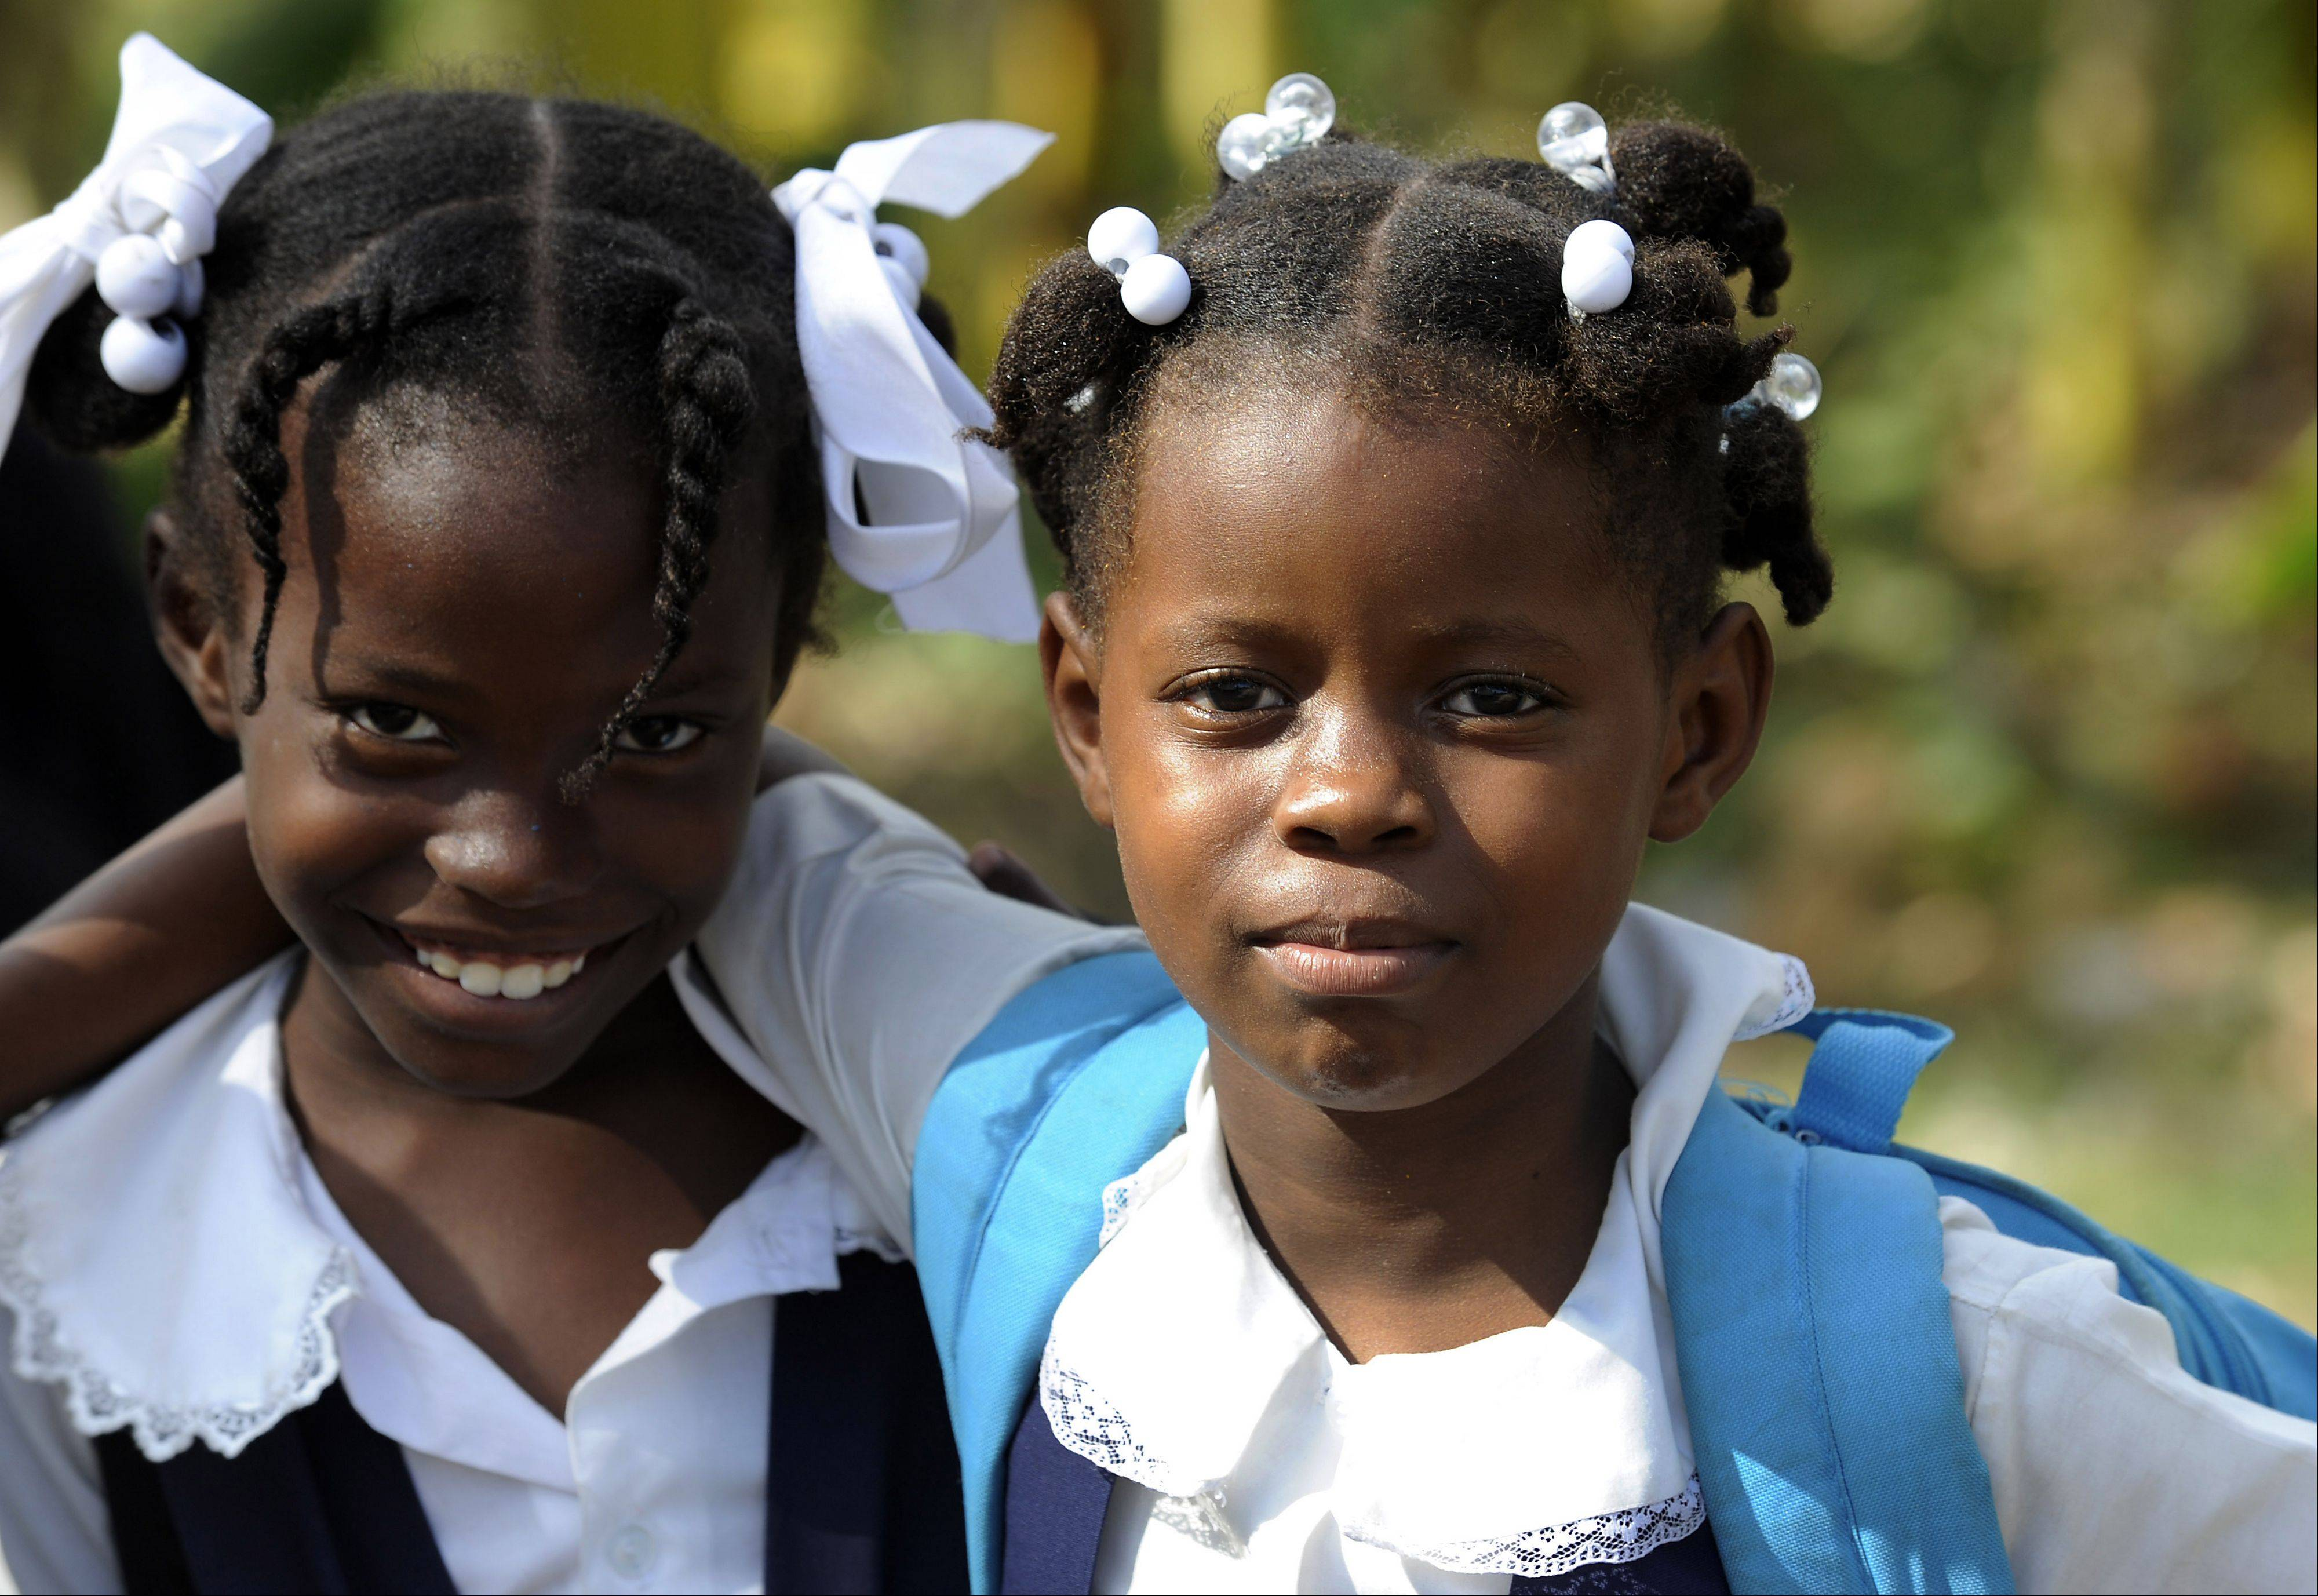 Schoolchildren in Haiti will benefit from an upcoming 5K Walk/Run fundraiser in Geneva. Hope for Haitians aims to raise money and awareness for school supplies and uniforms through Food for the Poor, a nonprofit organization.